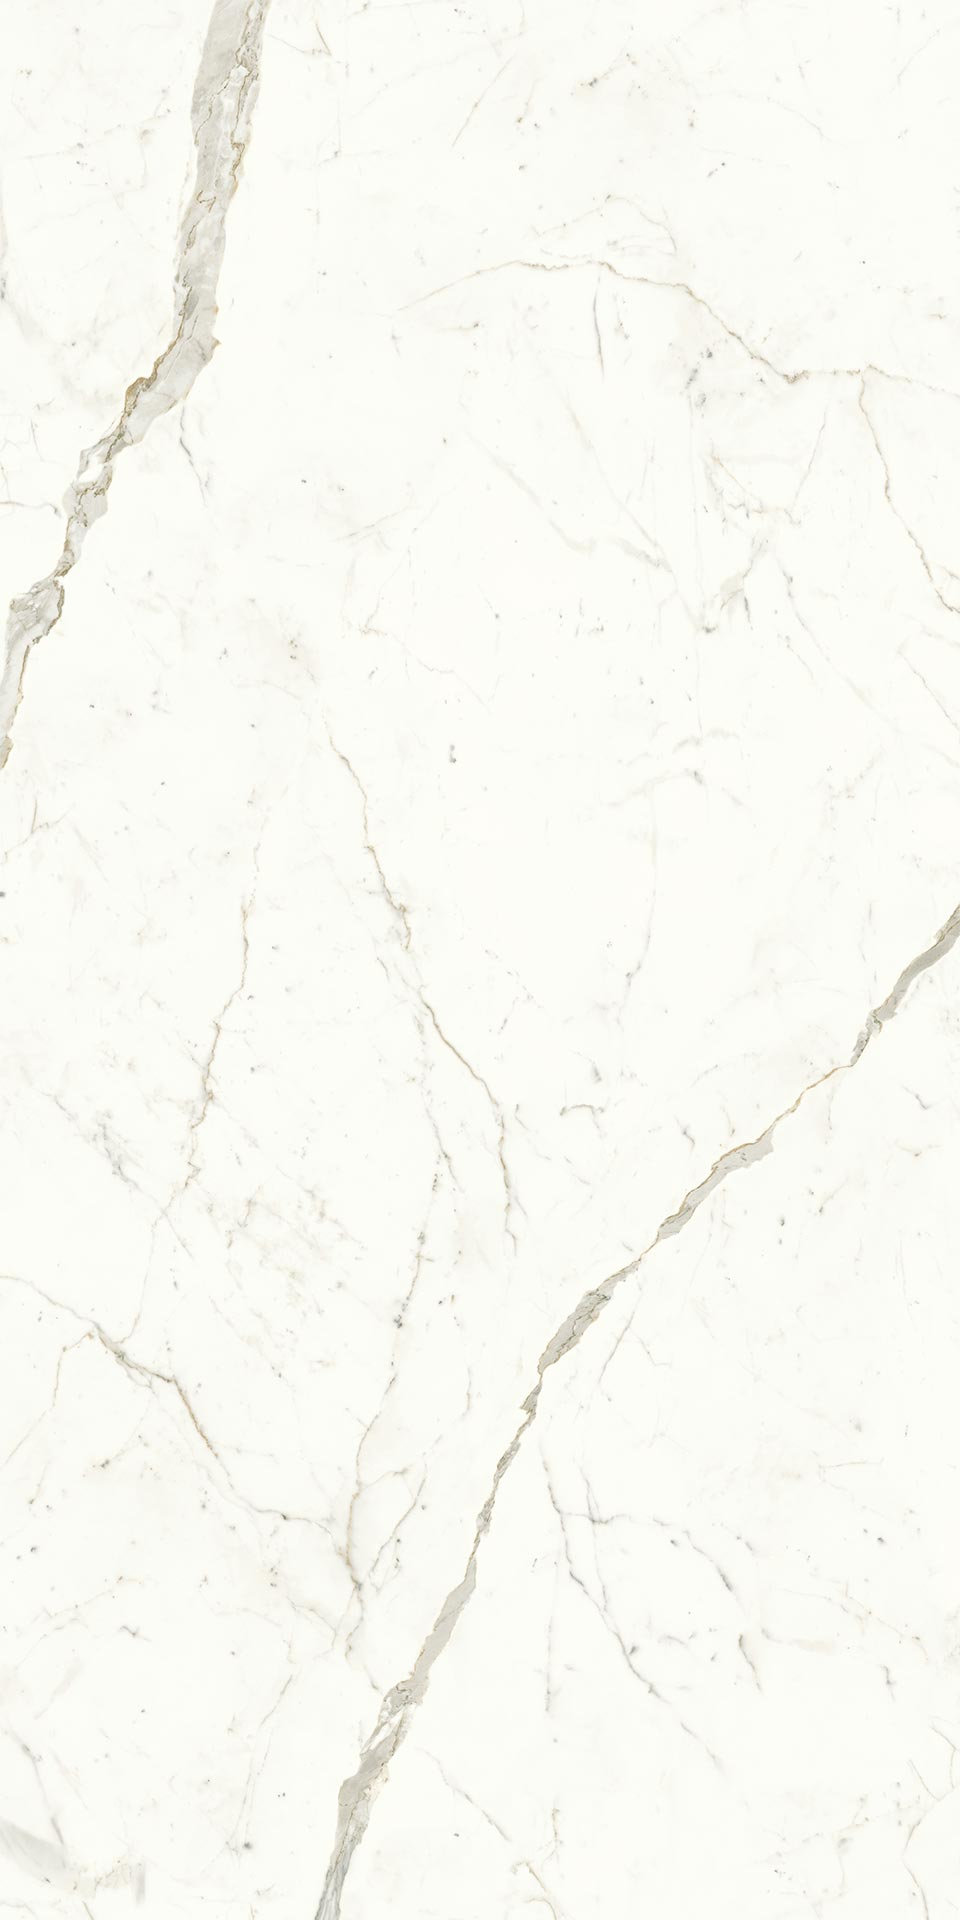 120x240-8-calacatta-prestigio-polished-9mm-porcelain-slab